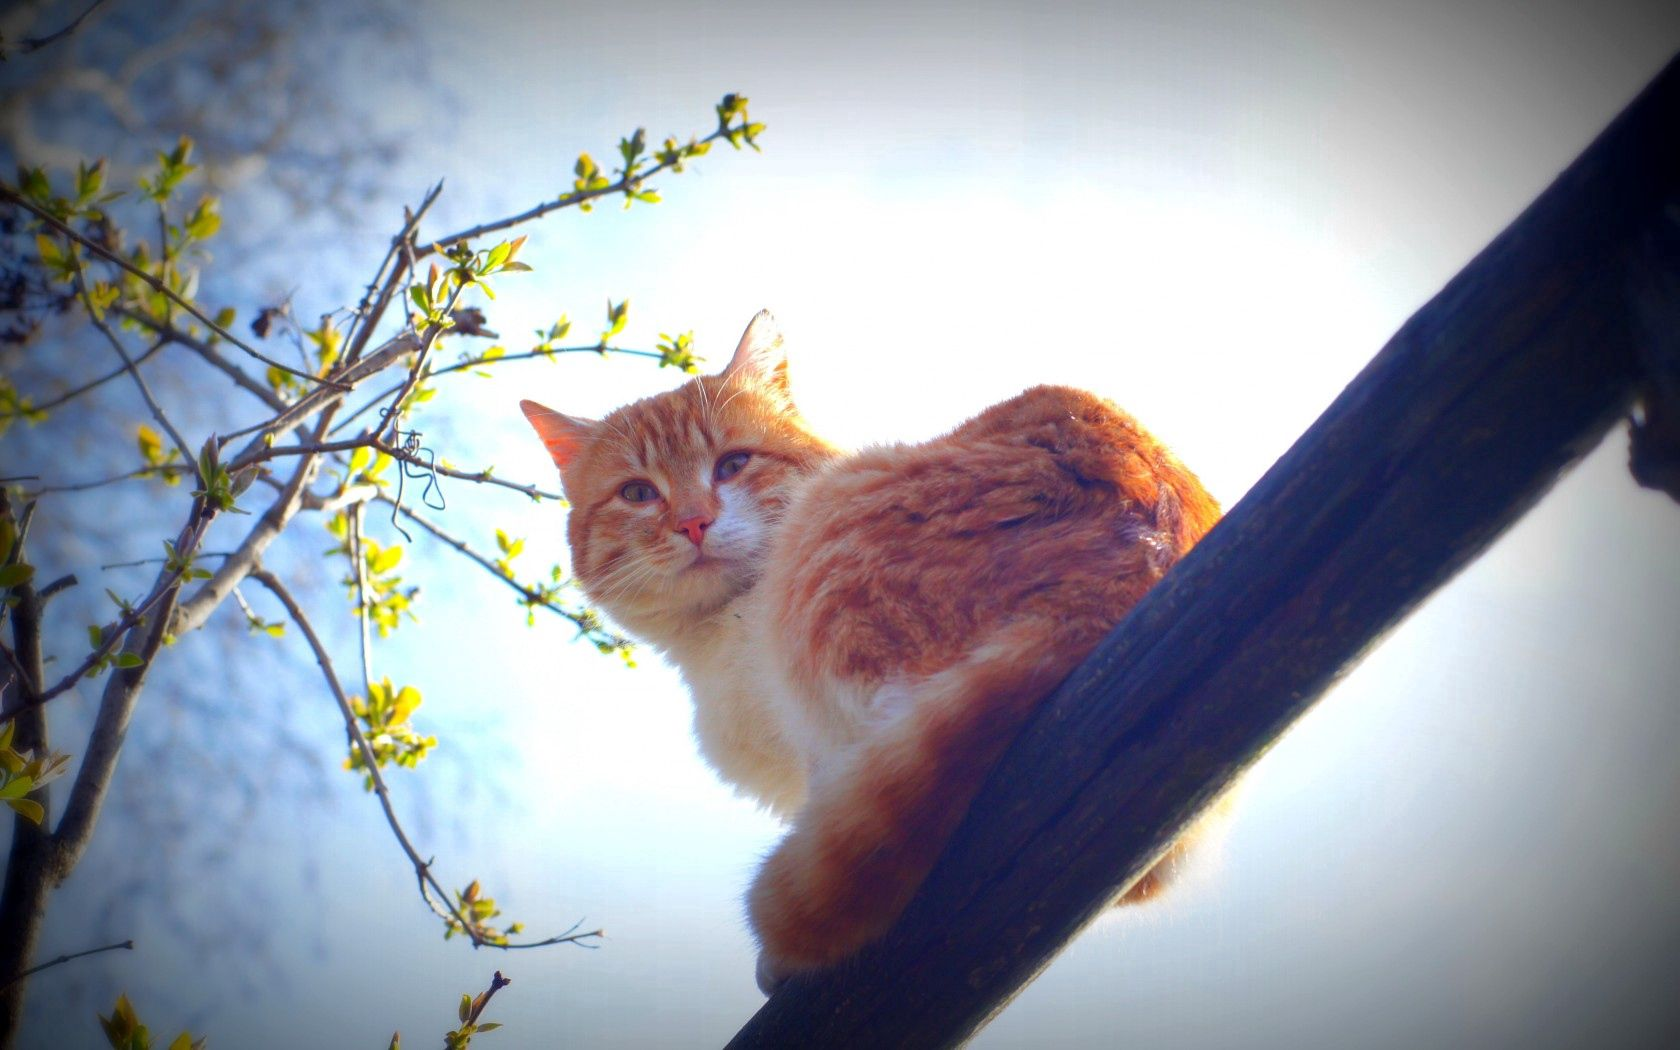 84609 download wallpaper Animals, Spring, Cat, Nature, Morning, Mustache, Moustache, Sun screensavers and pictures for free